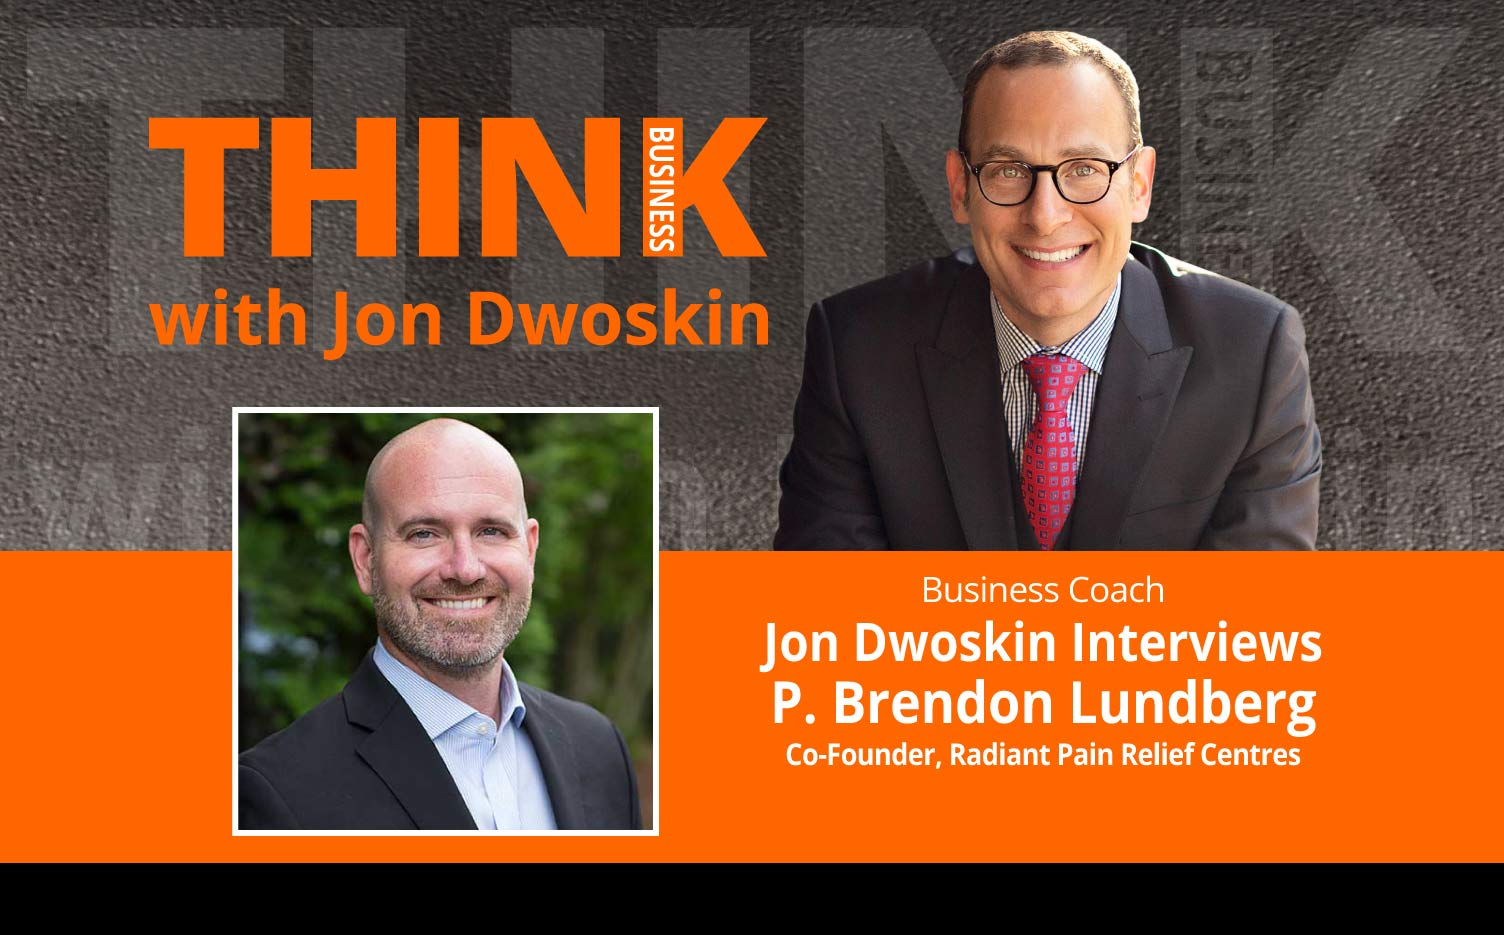 THINK Business Podcast: Jon Dwoskin Interviews P. Brendon Lundberg, Co-Founder, Radiant Pain Relief Centres